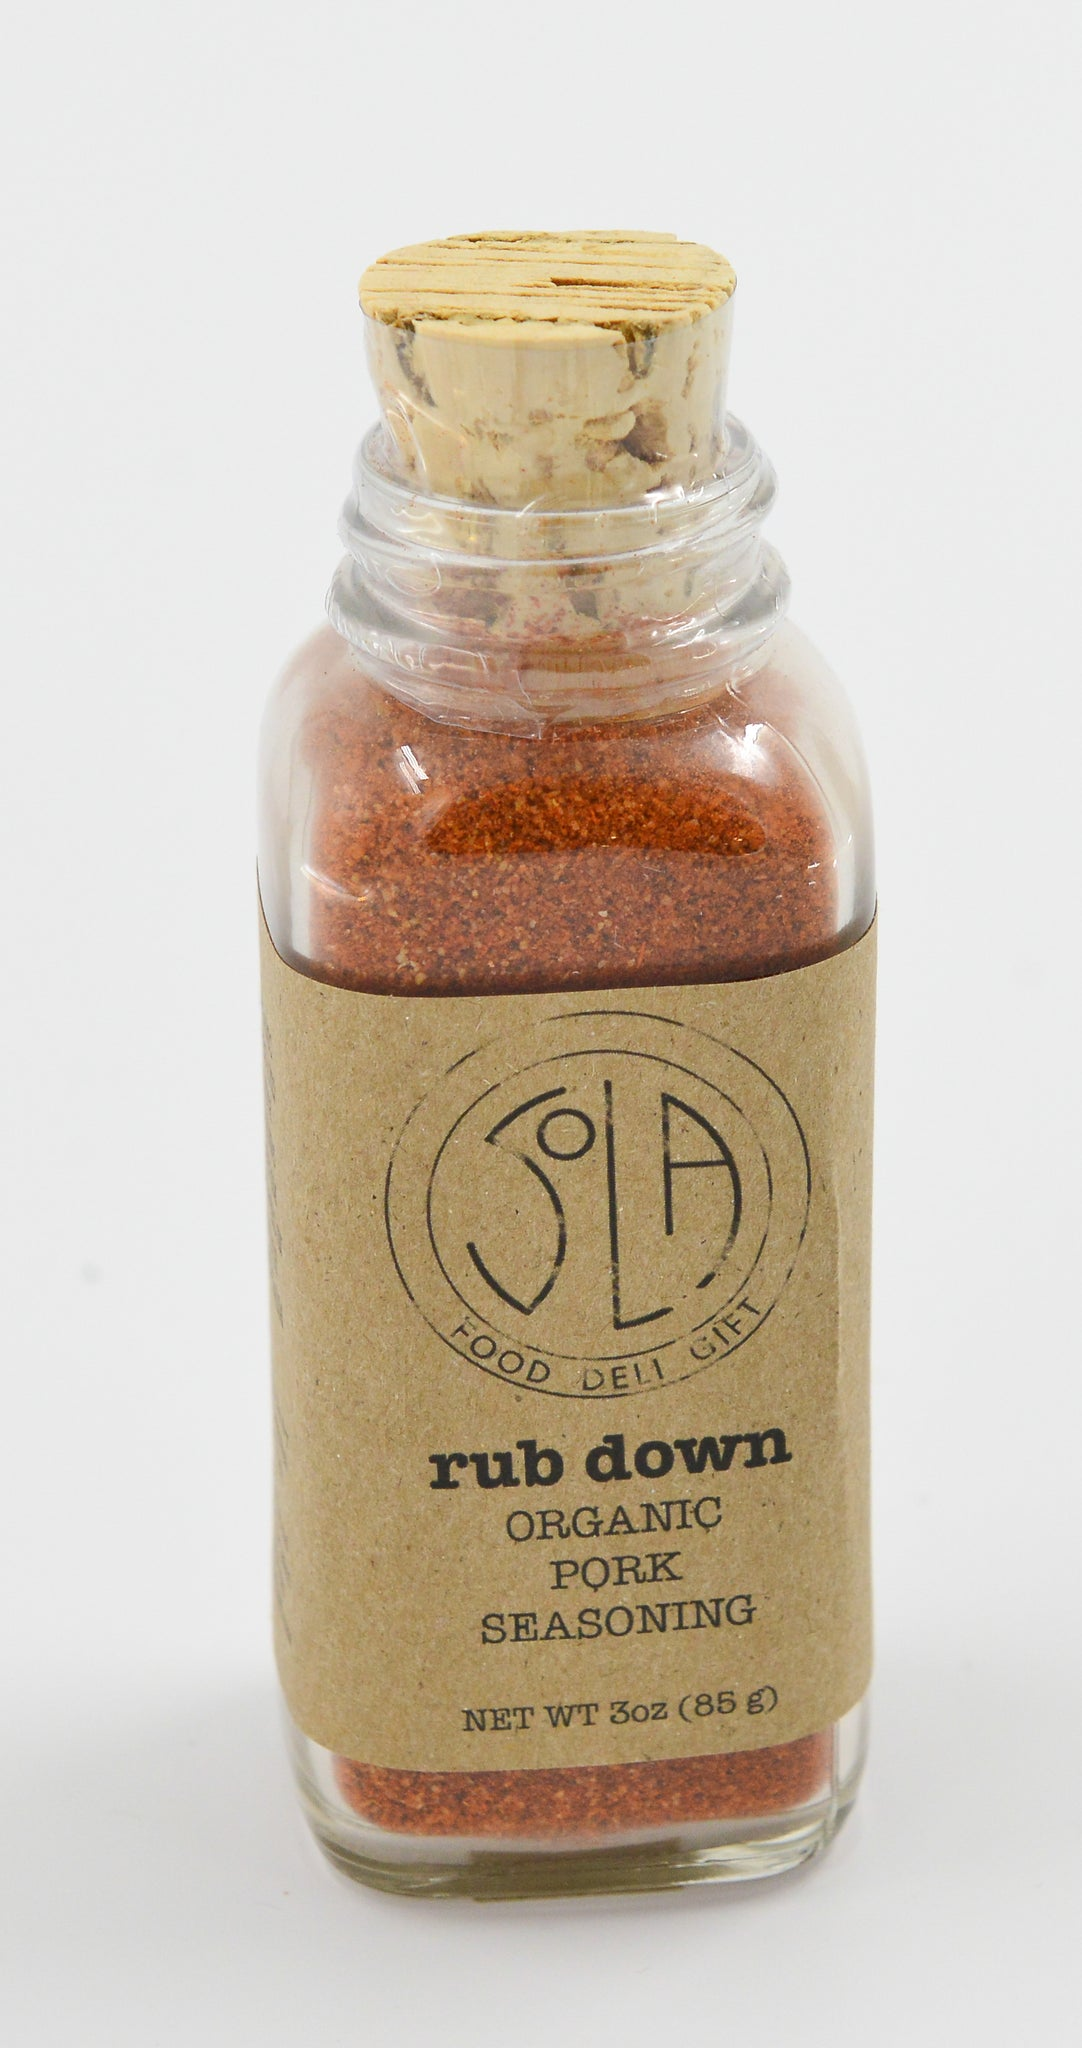 rub down Organic Pork Seasoning - 318 Art and Garden